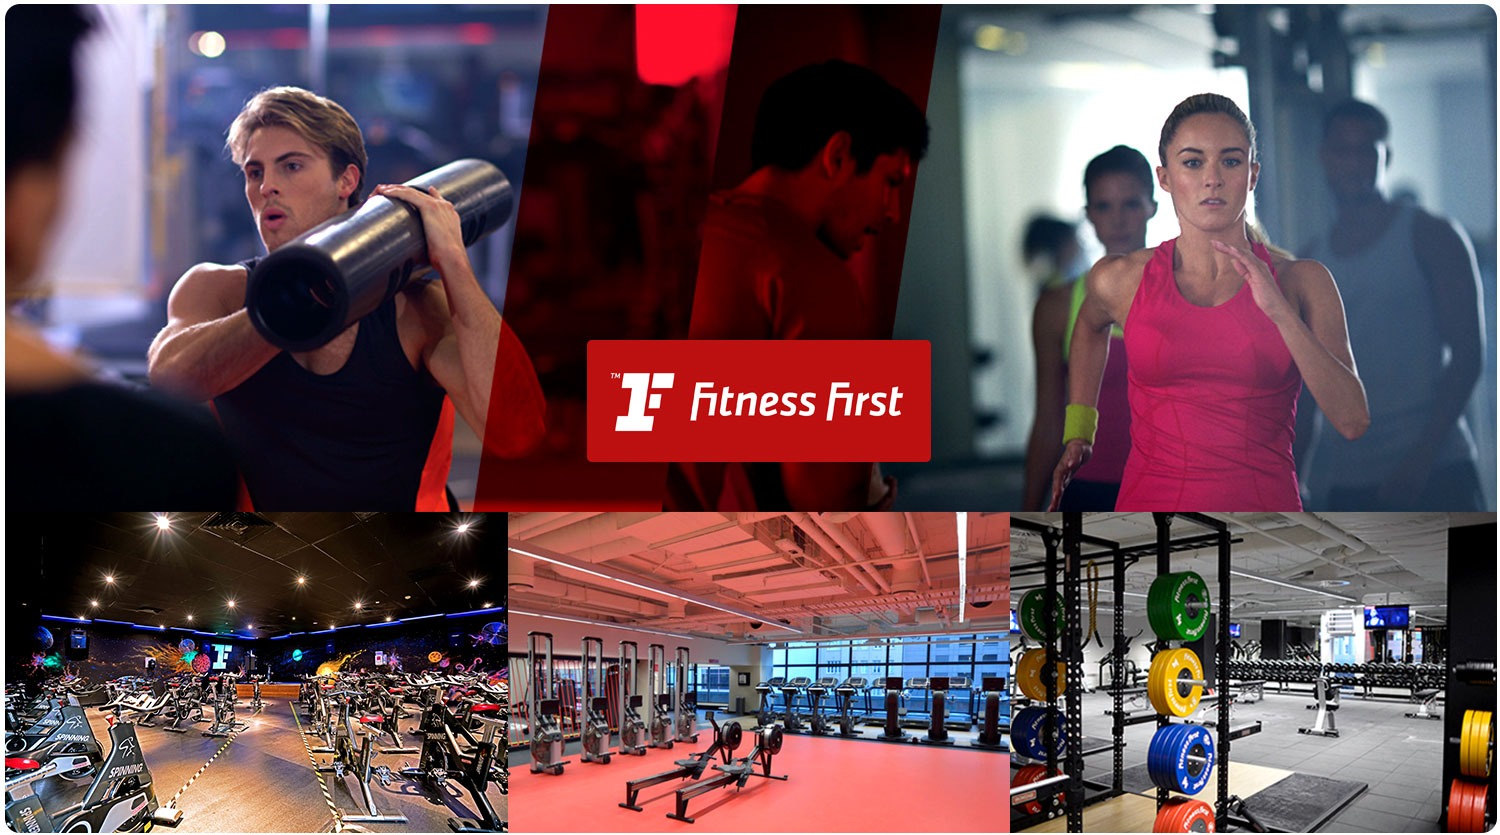 Start your Fitness Journey with Fitness First with only $14.95 for 14 days at Fitness First Castle Hill NSW. Experience our first class gym and freestyle classes inc. Zumba, Pilates, Yoga, HIIT, Les Mills and more. Take the first step with Fitness First Castle Hill NSW.